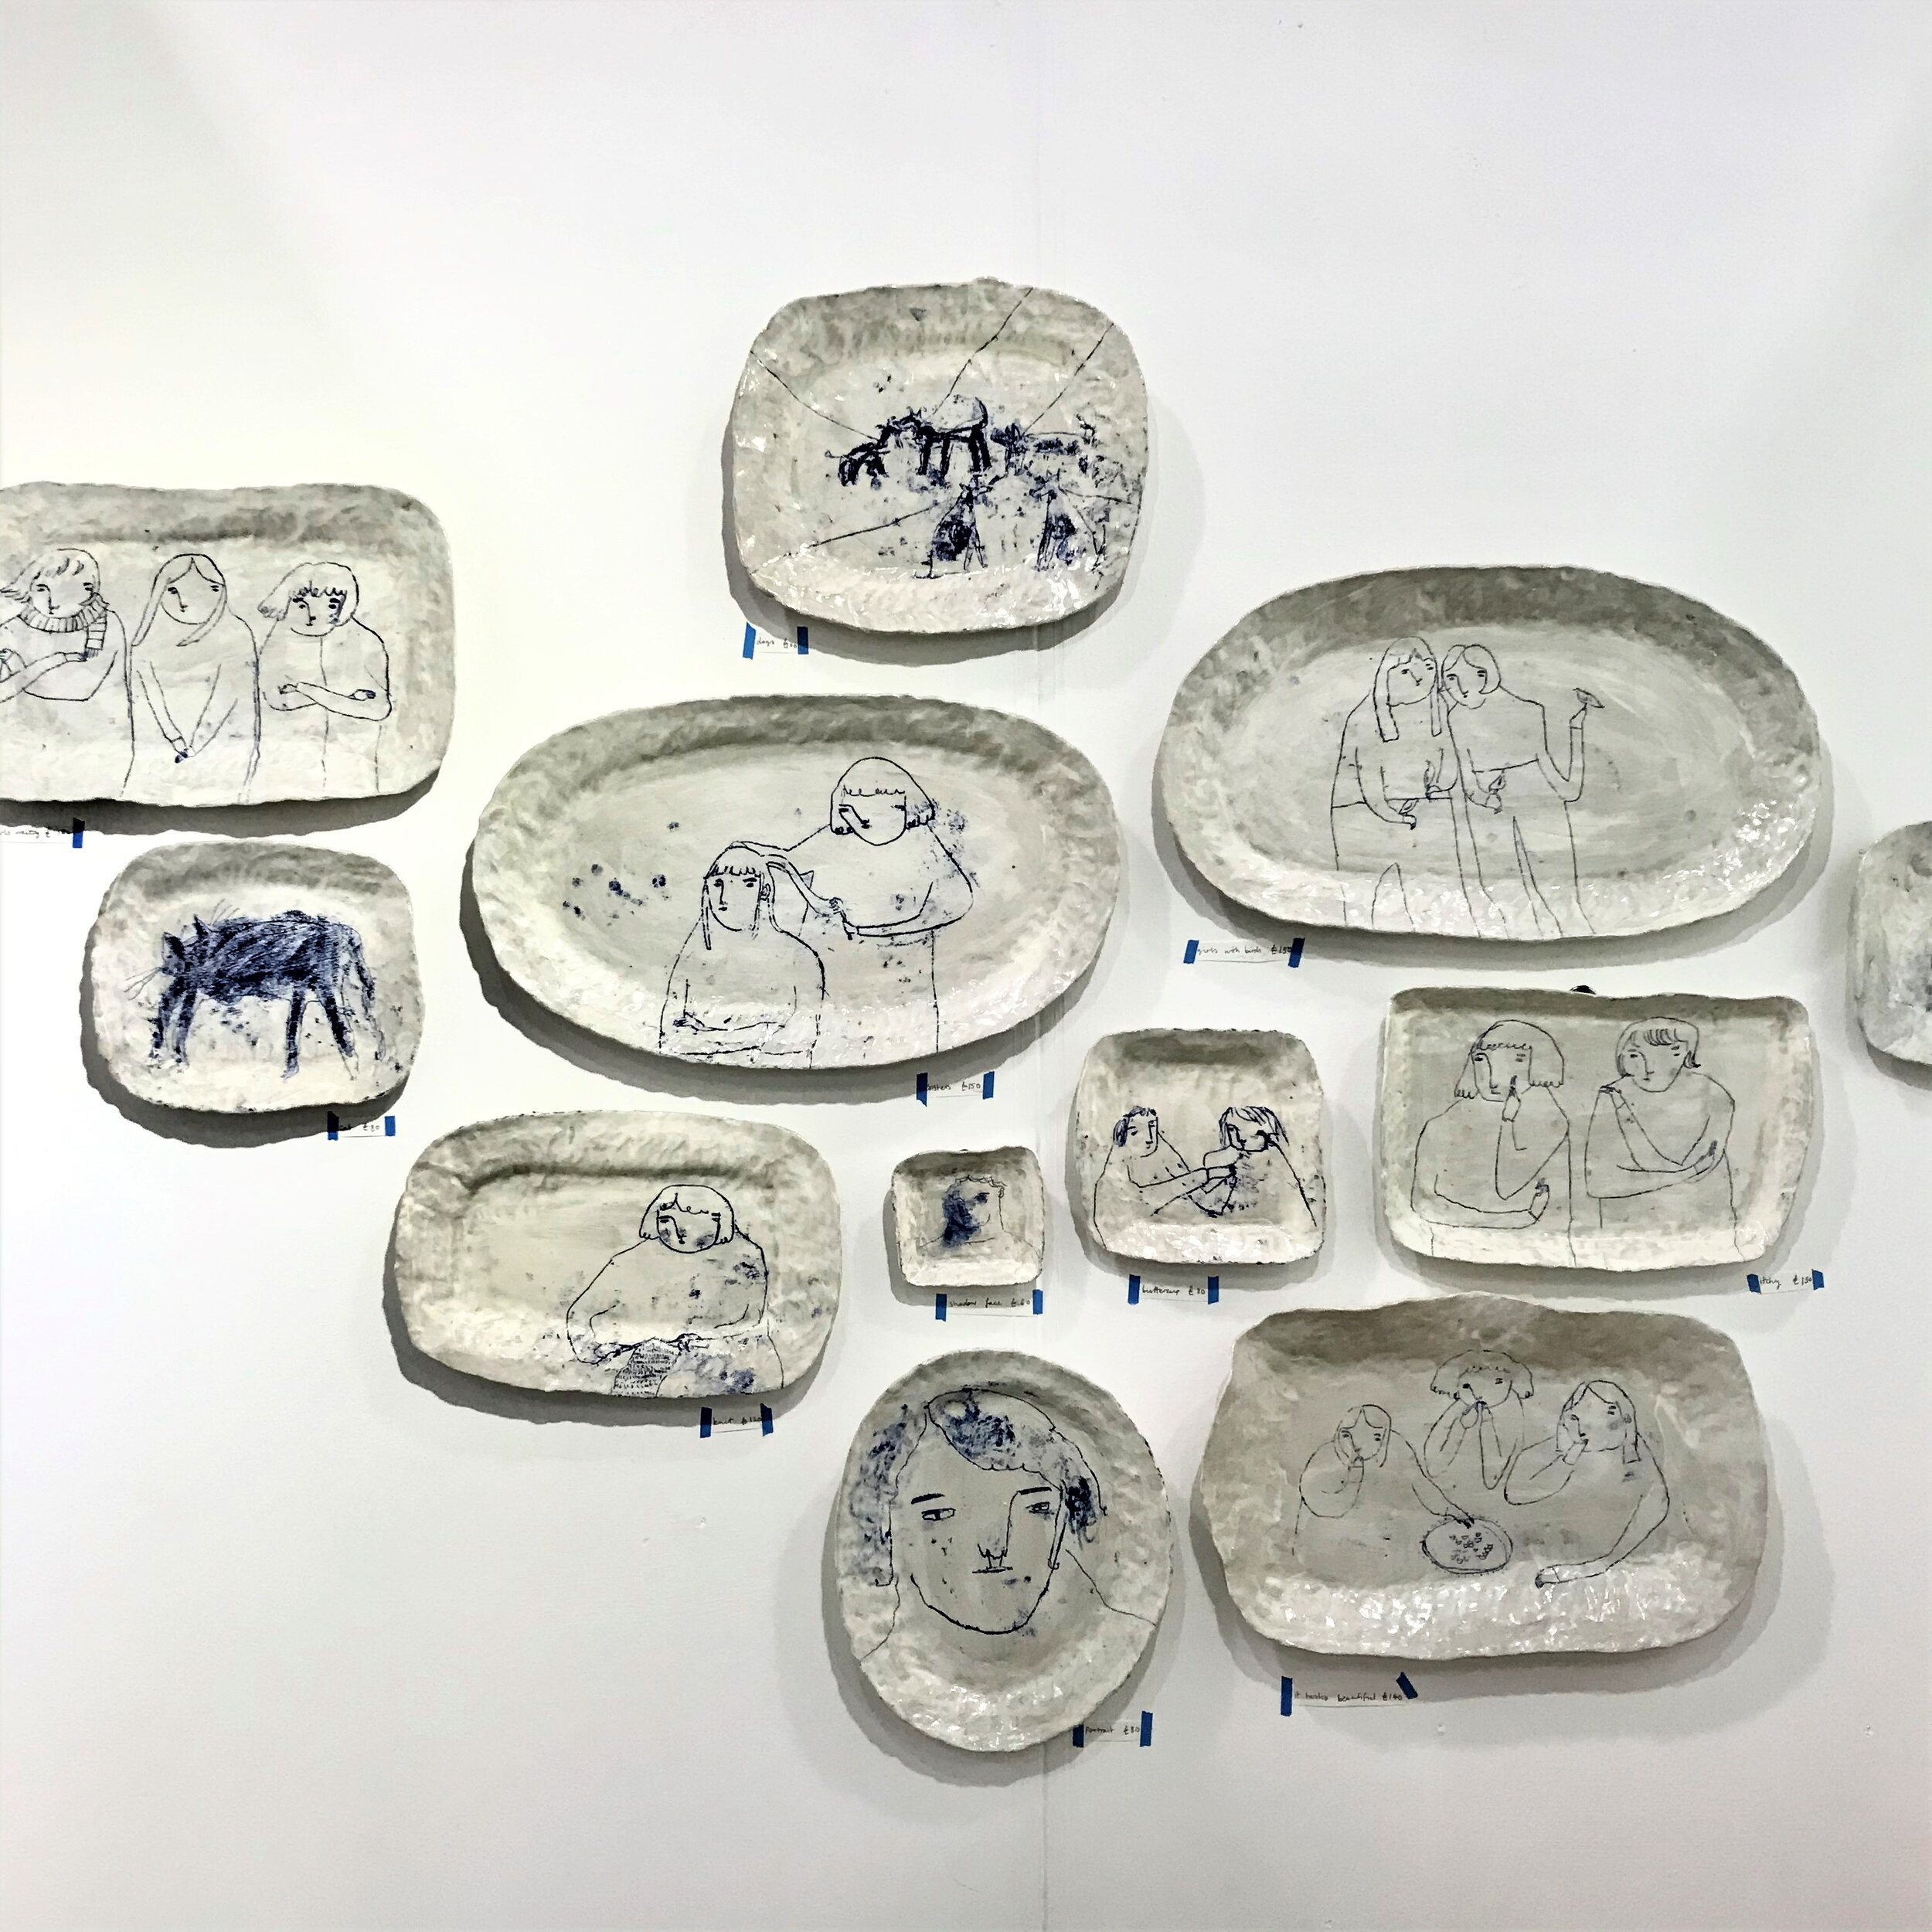 Becca Brown  - The collection of story plates are created using the mono printing technique using oxide inks. These charming illustrations are conjured by strange stories and sayings. Becca builds a narrative on the surface of decorative hand built ceramics exposing brush strokes + fingerprints + making marks to accentuate the relationship between vessel and subject. www.beccabrown.co.uk